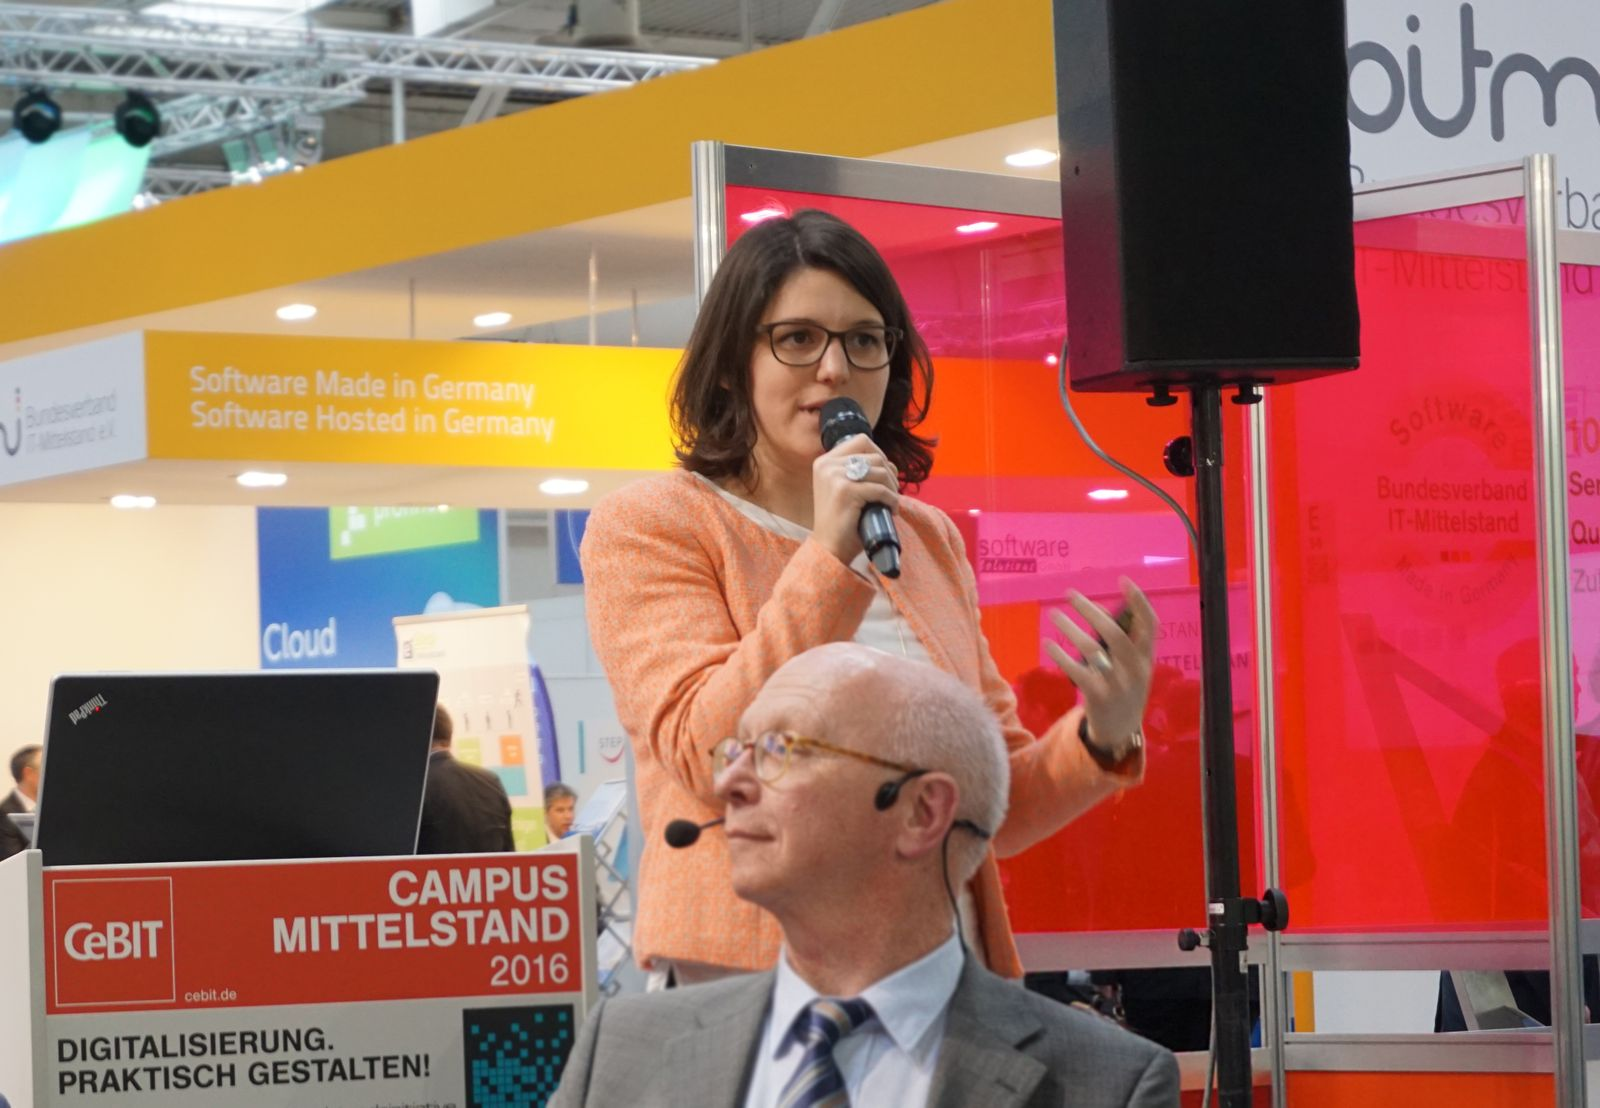 Cebit 2016 - Julia Kasper